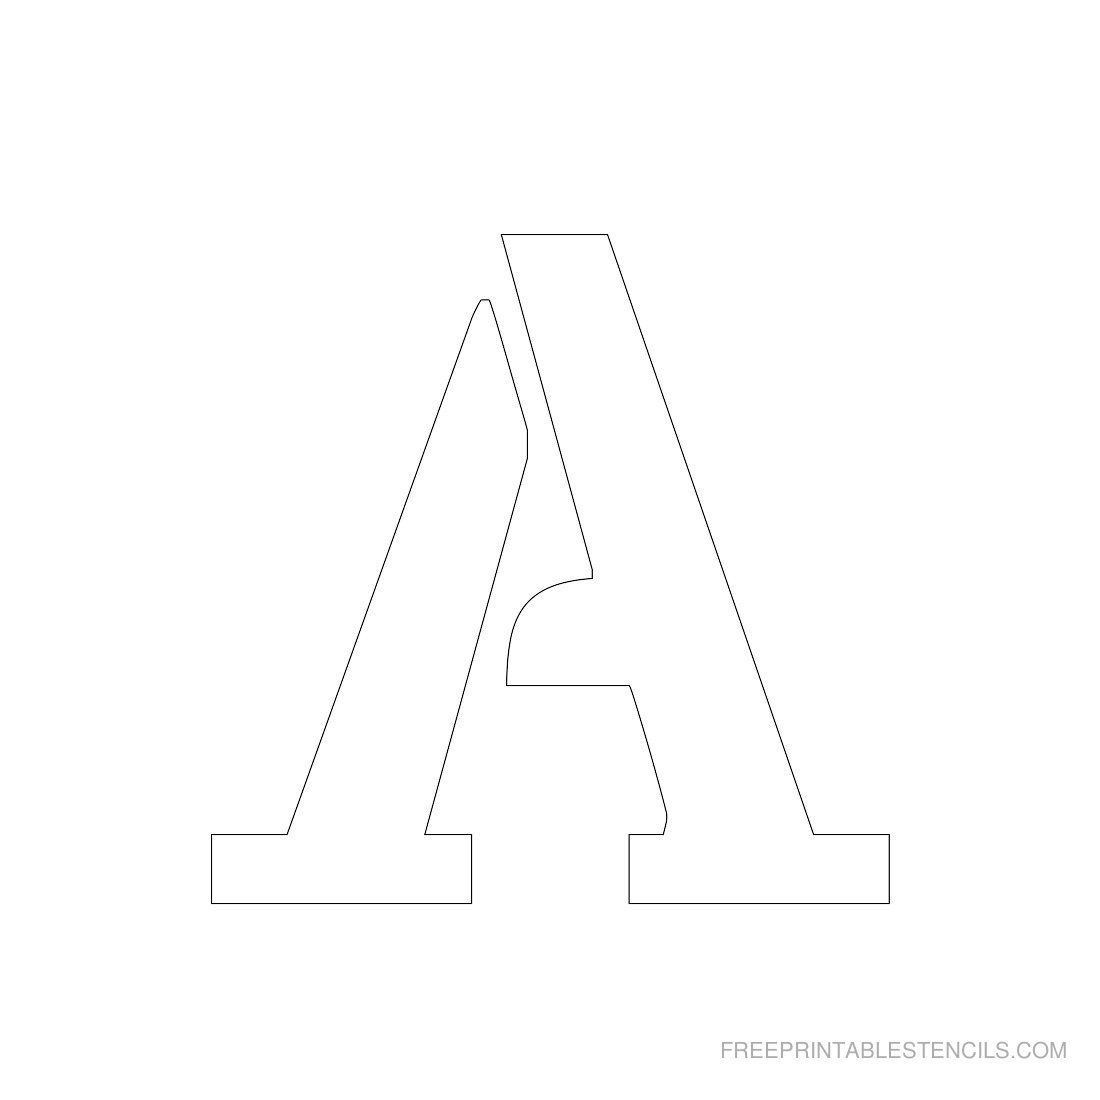 Printable 3 Inch Letter Stencil A--Has Full Alphabet | Typography - Free Printable 12 Inch Letter Stencils